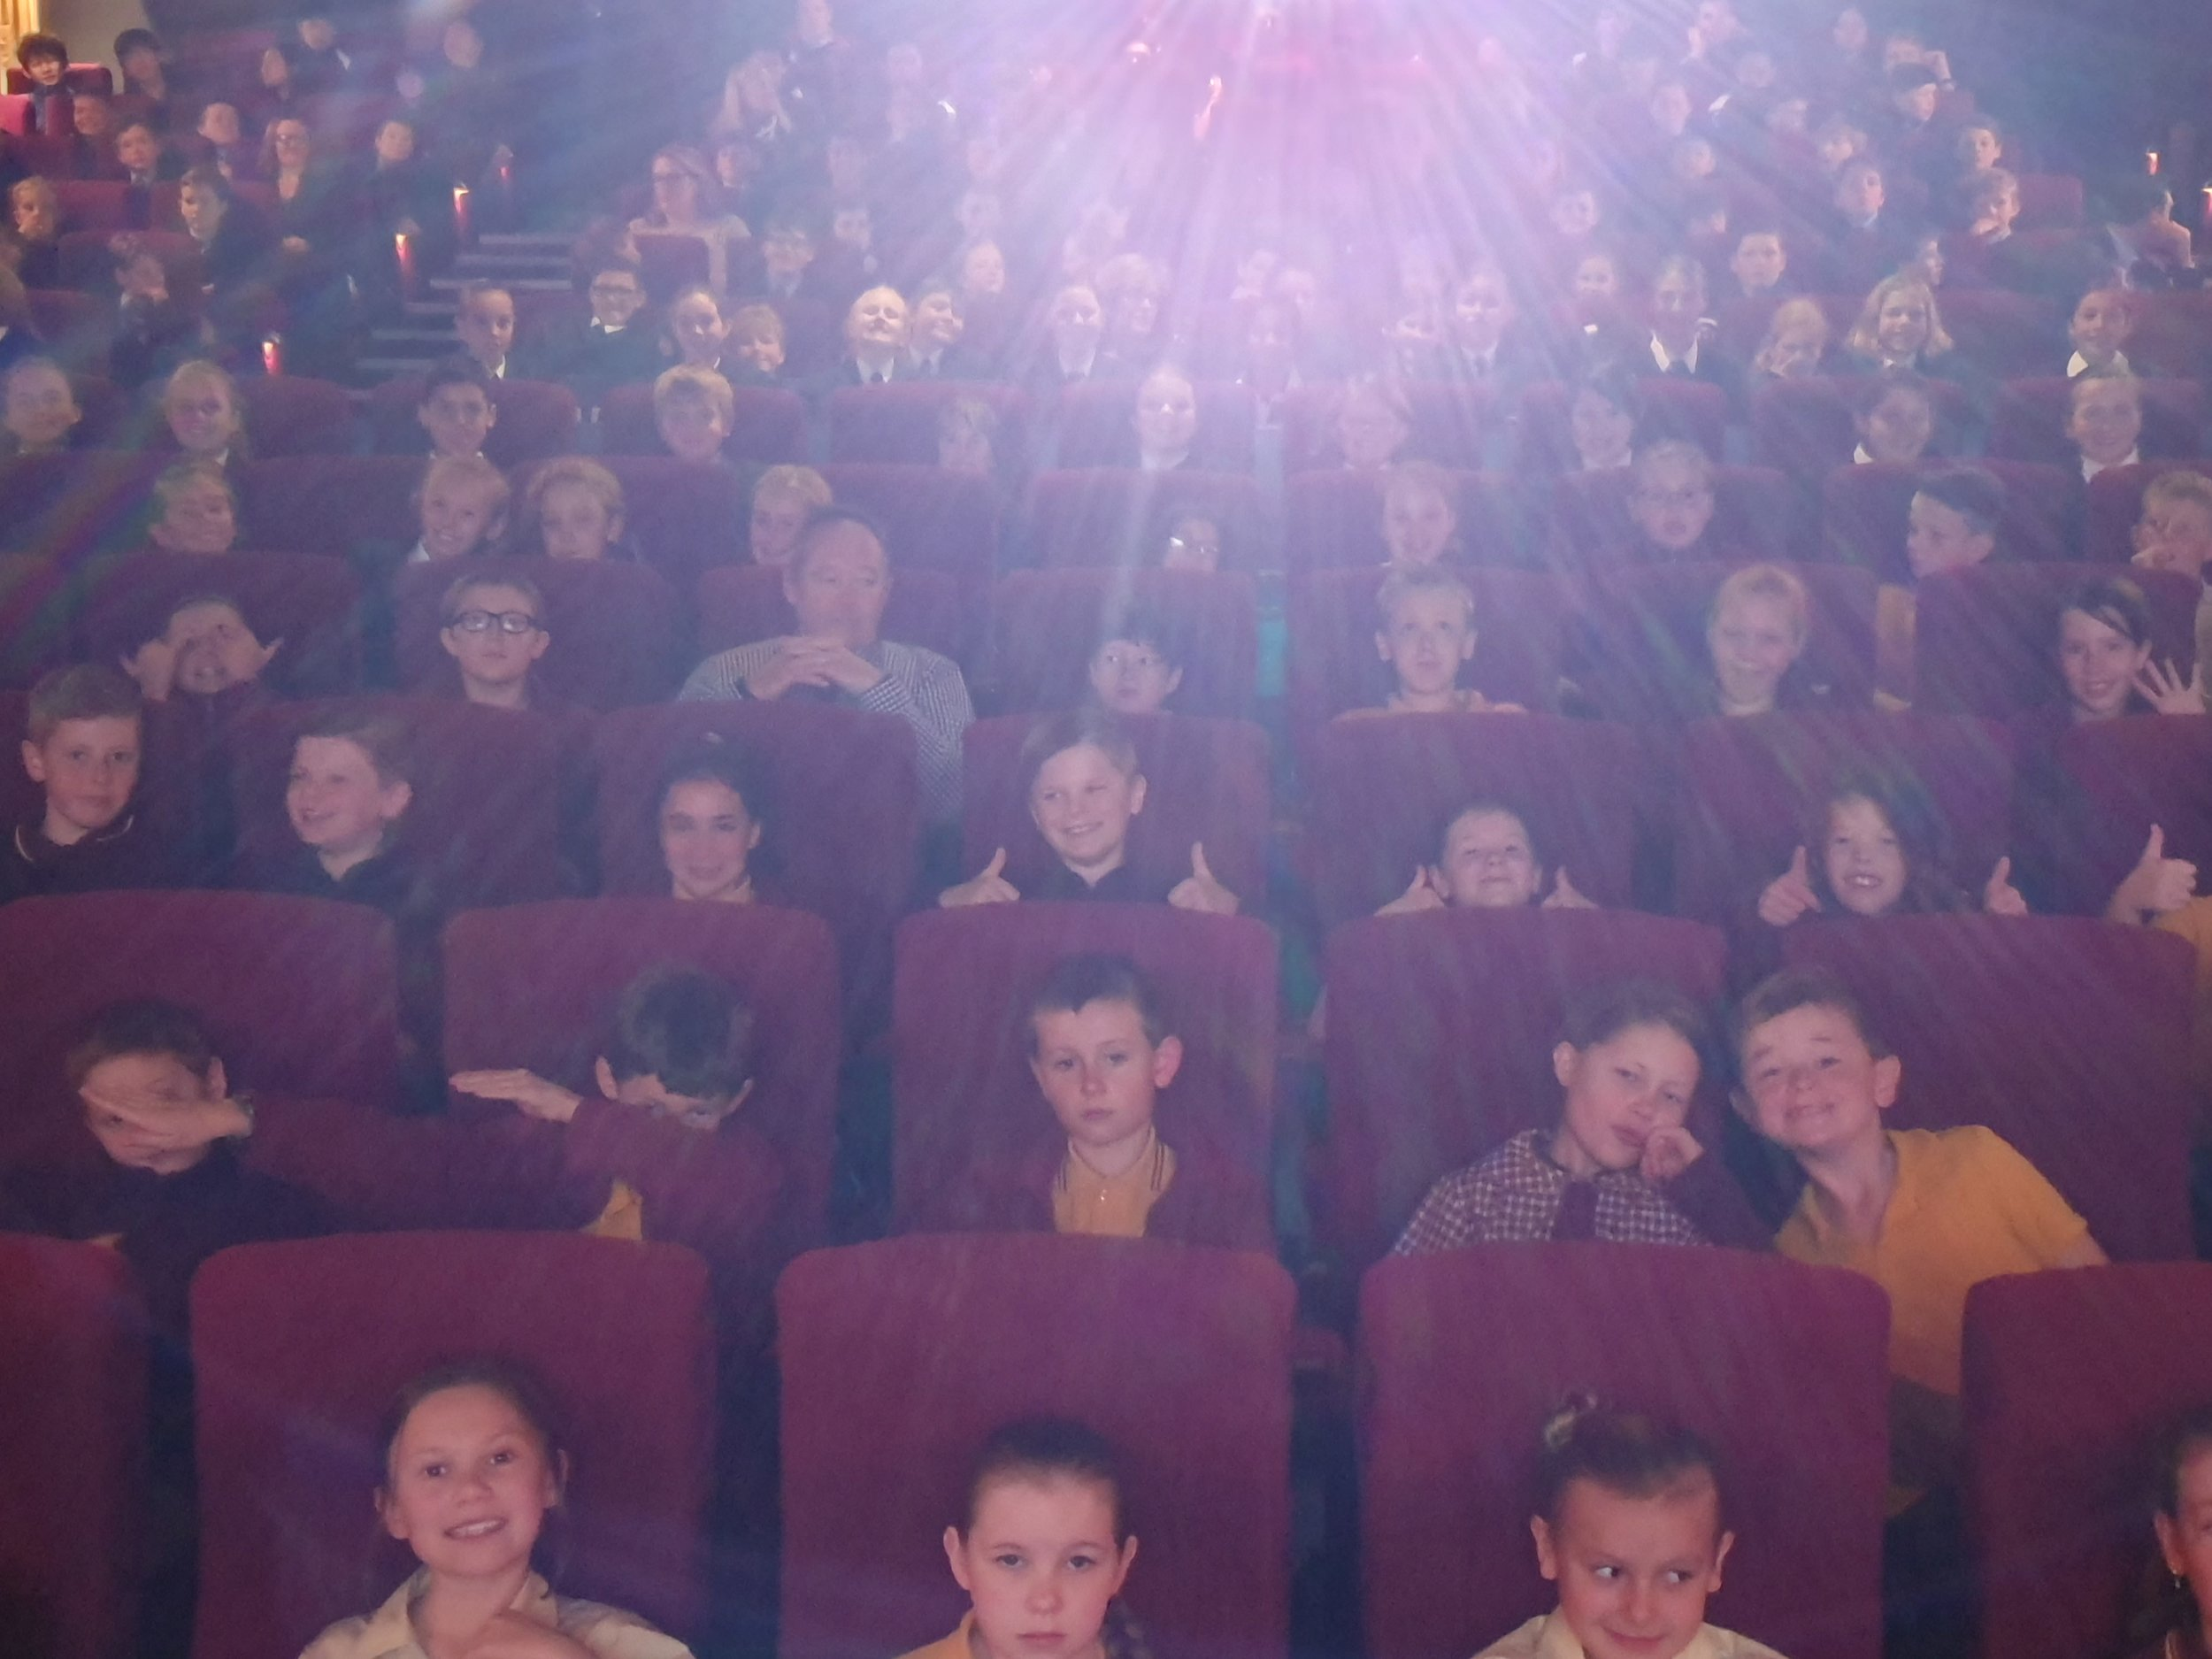 No better way to experience a film than all together in the cinema..jpg